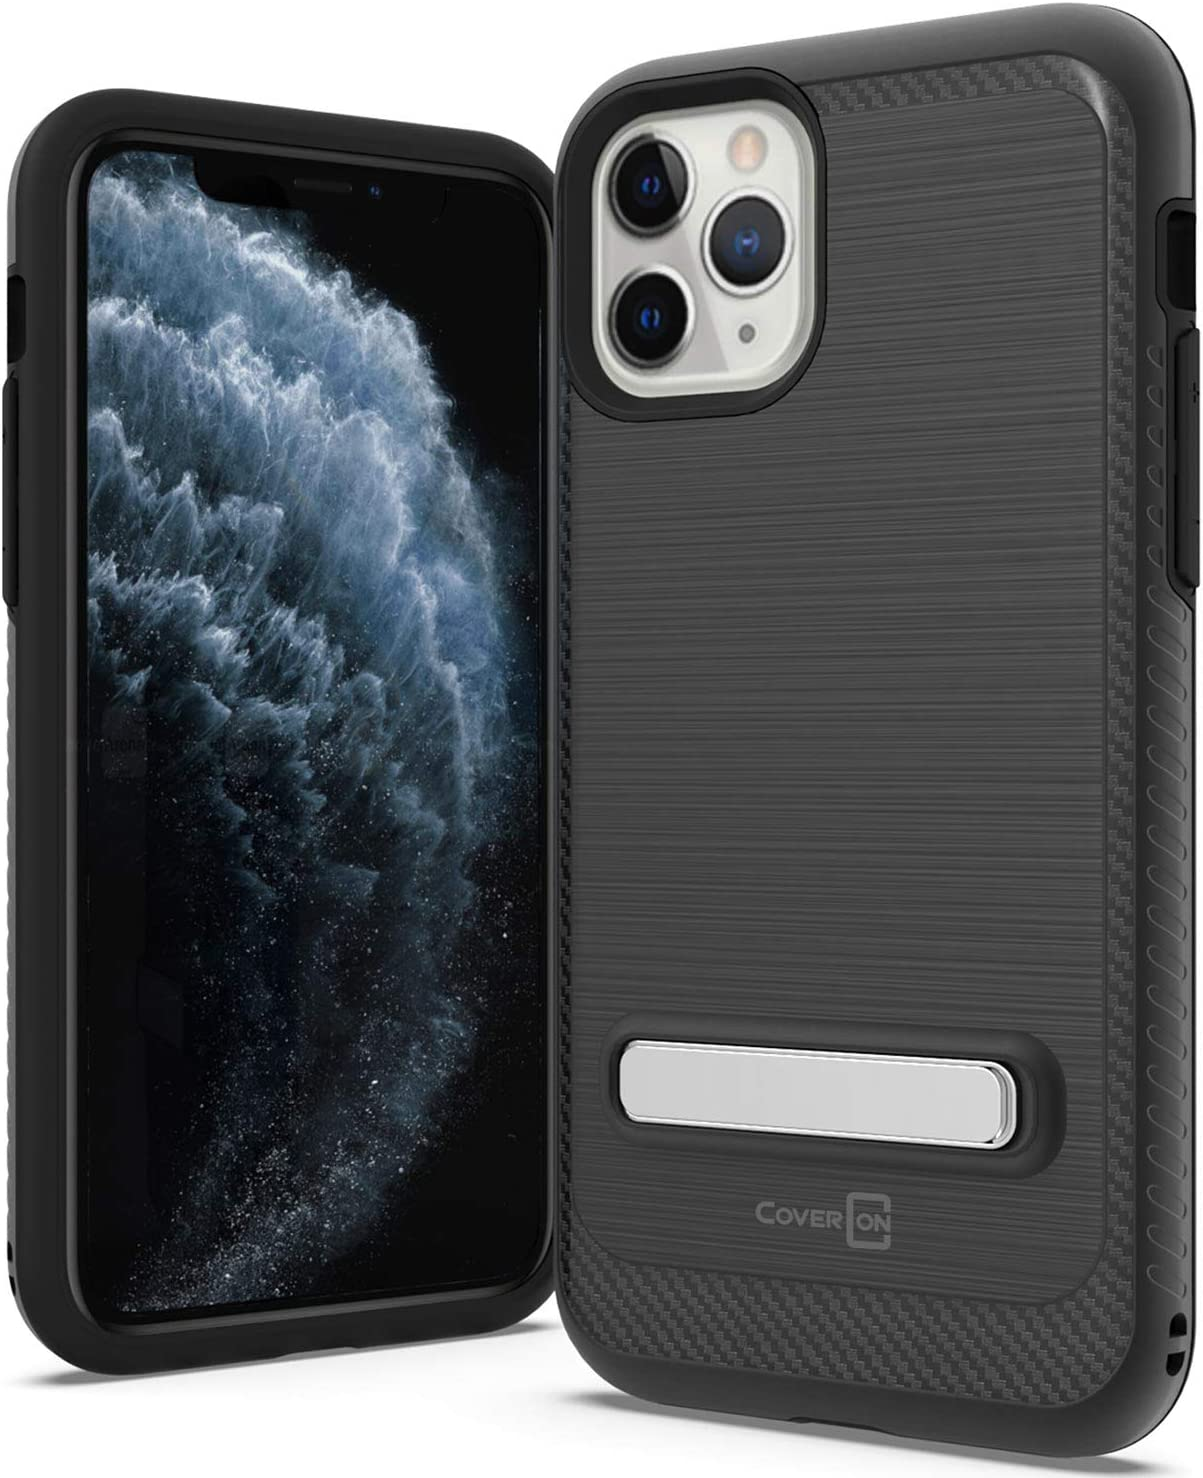 CoverON Metal Kickstand Protective SleekStand Series for iPhone 11 Pro Case, Midnight Black